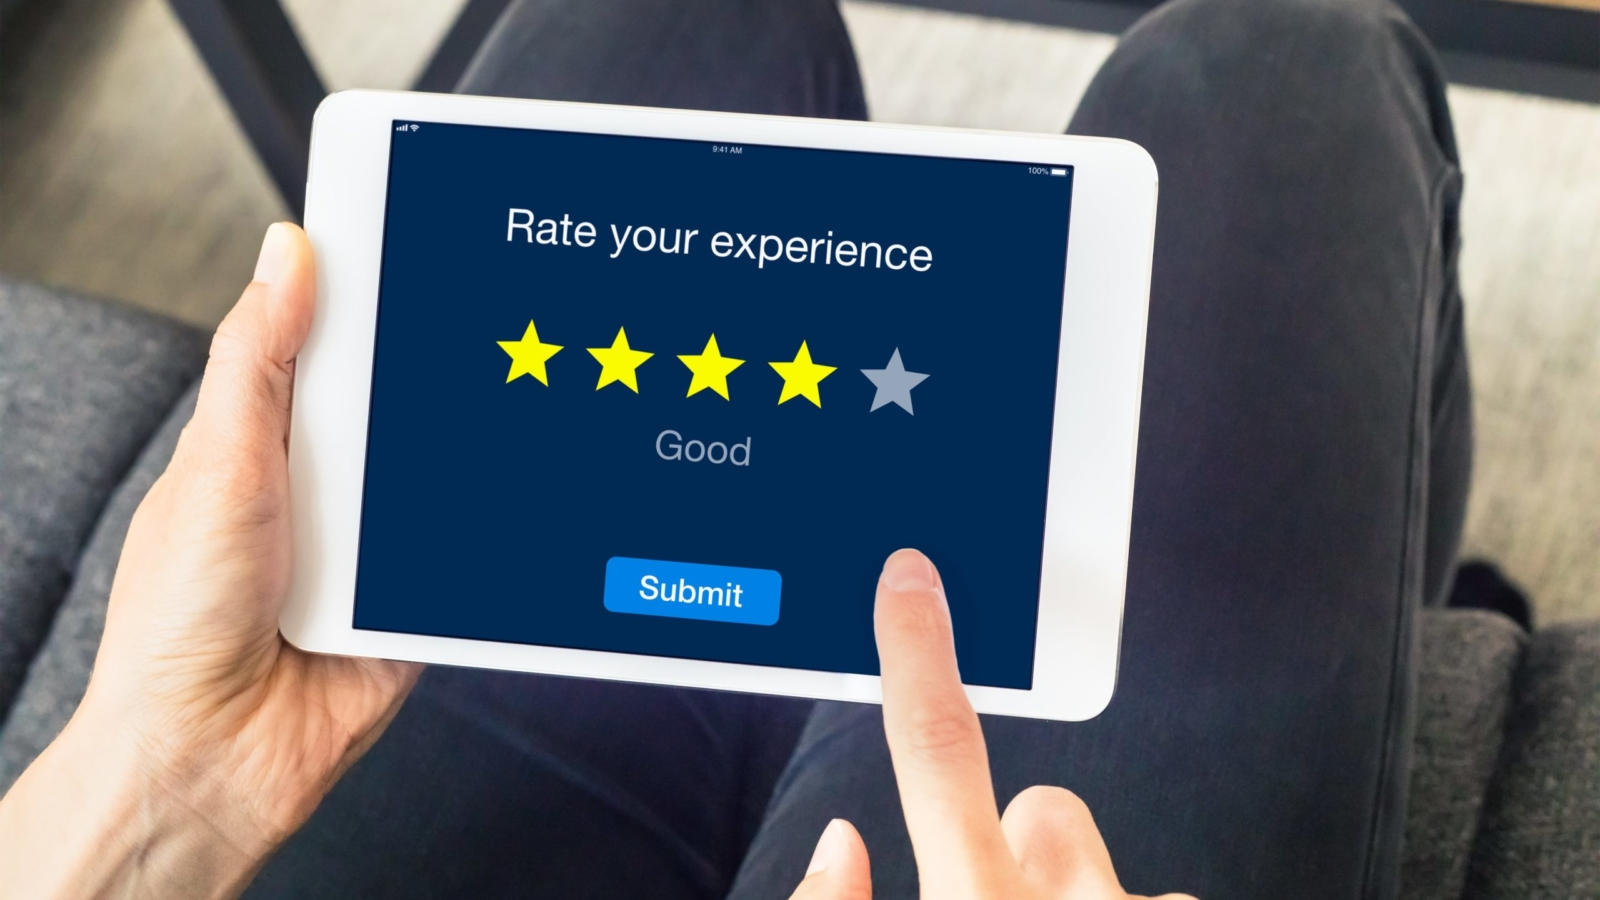 Person leaves a rating on tablet